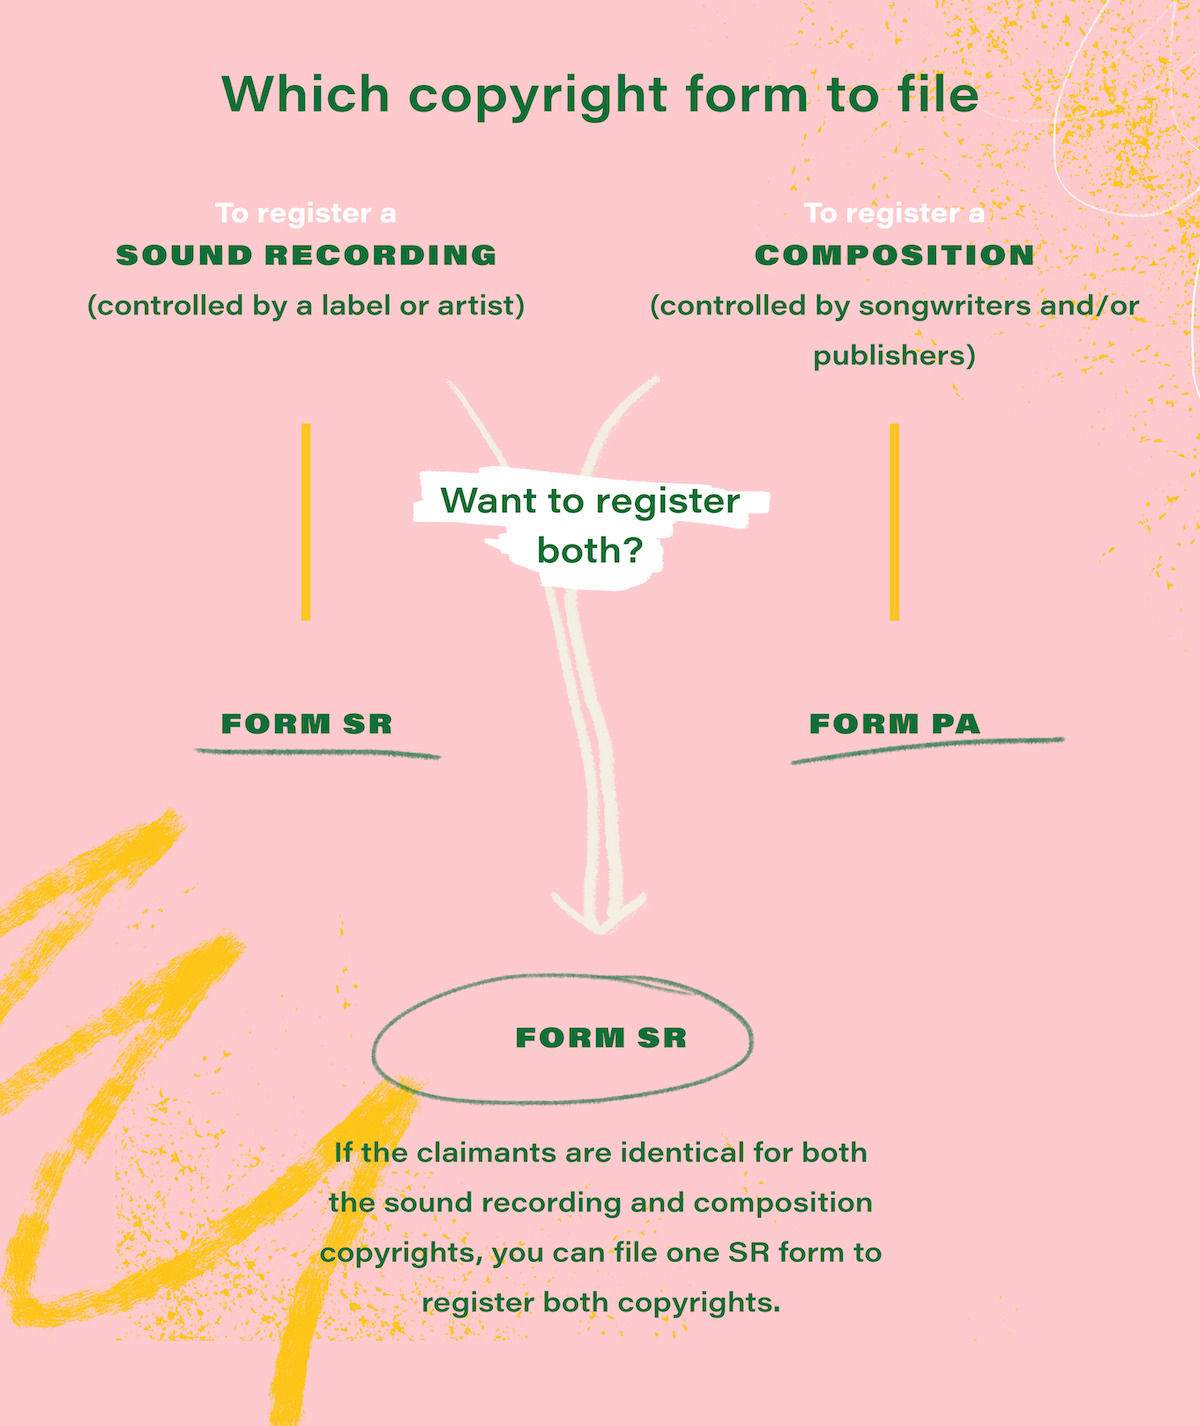 Which copyright form should you file for your music